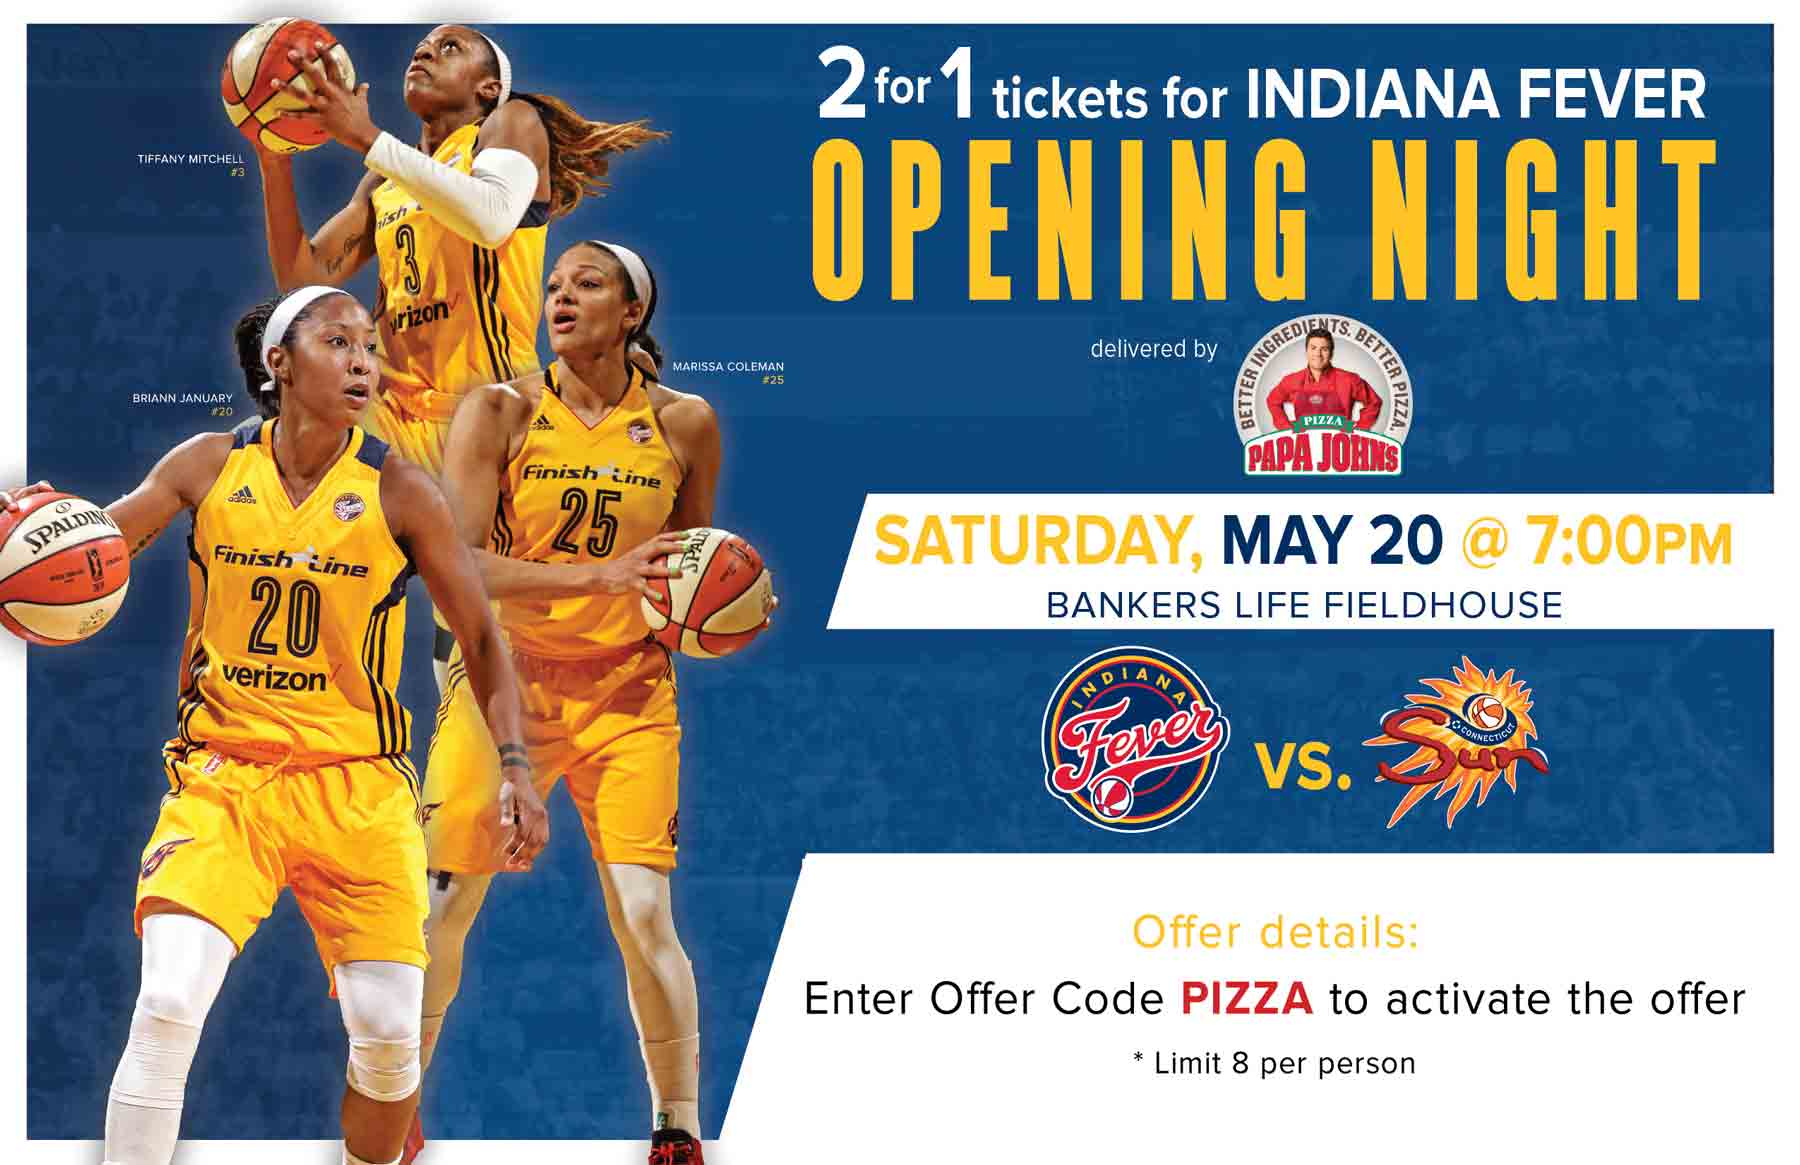 Papa John's Opening Night Offer